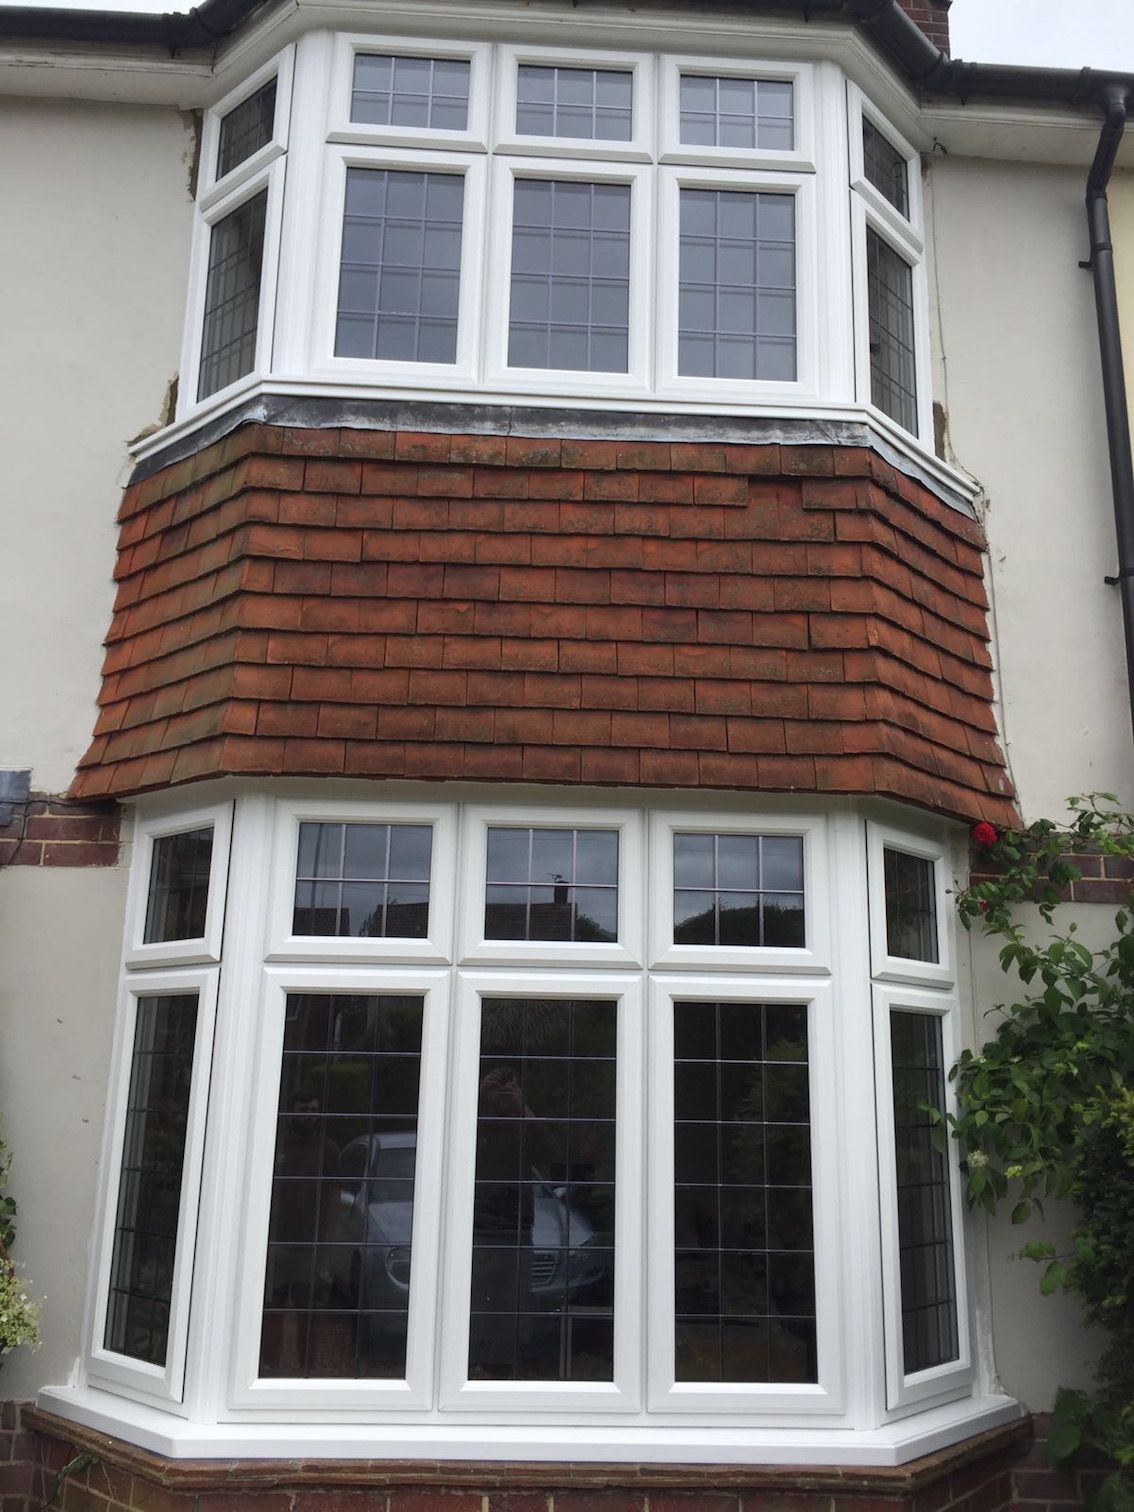 Replacement double glazed bay windows on 1930s house